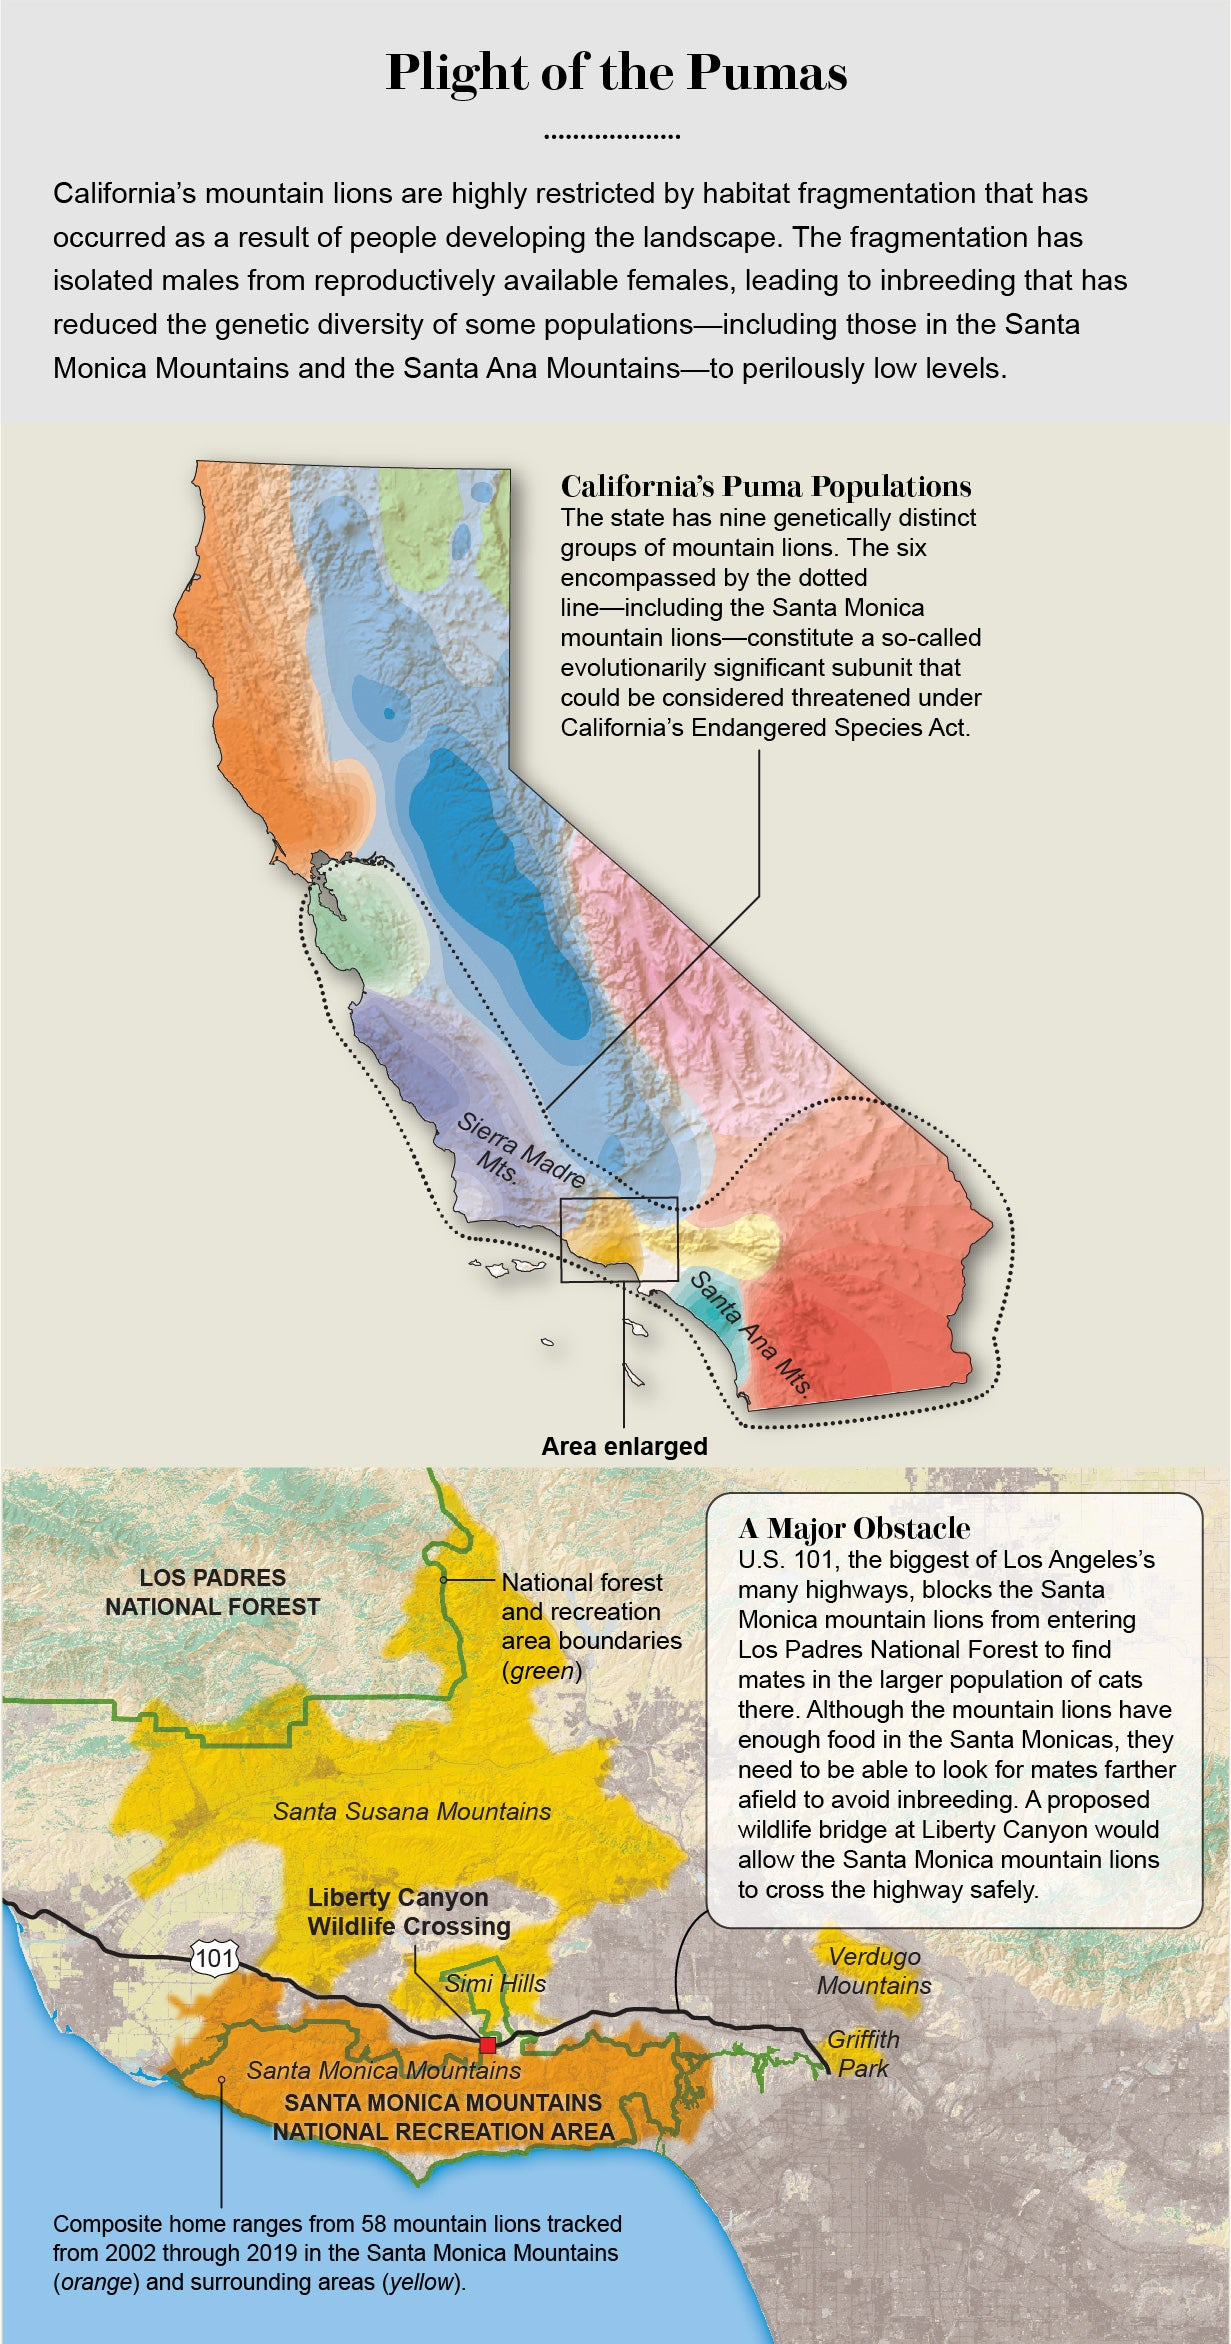 Map shows ranges of mountain lion groups in California and where U.S. 101 restricts the Santa Monica group's movement.